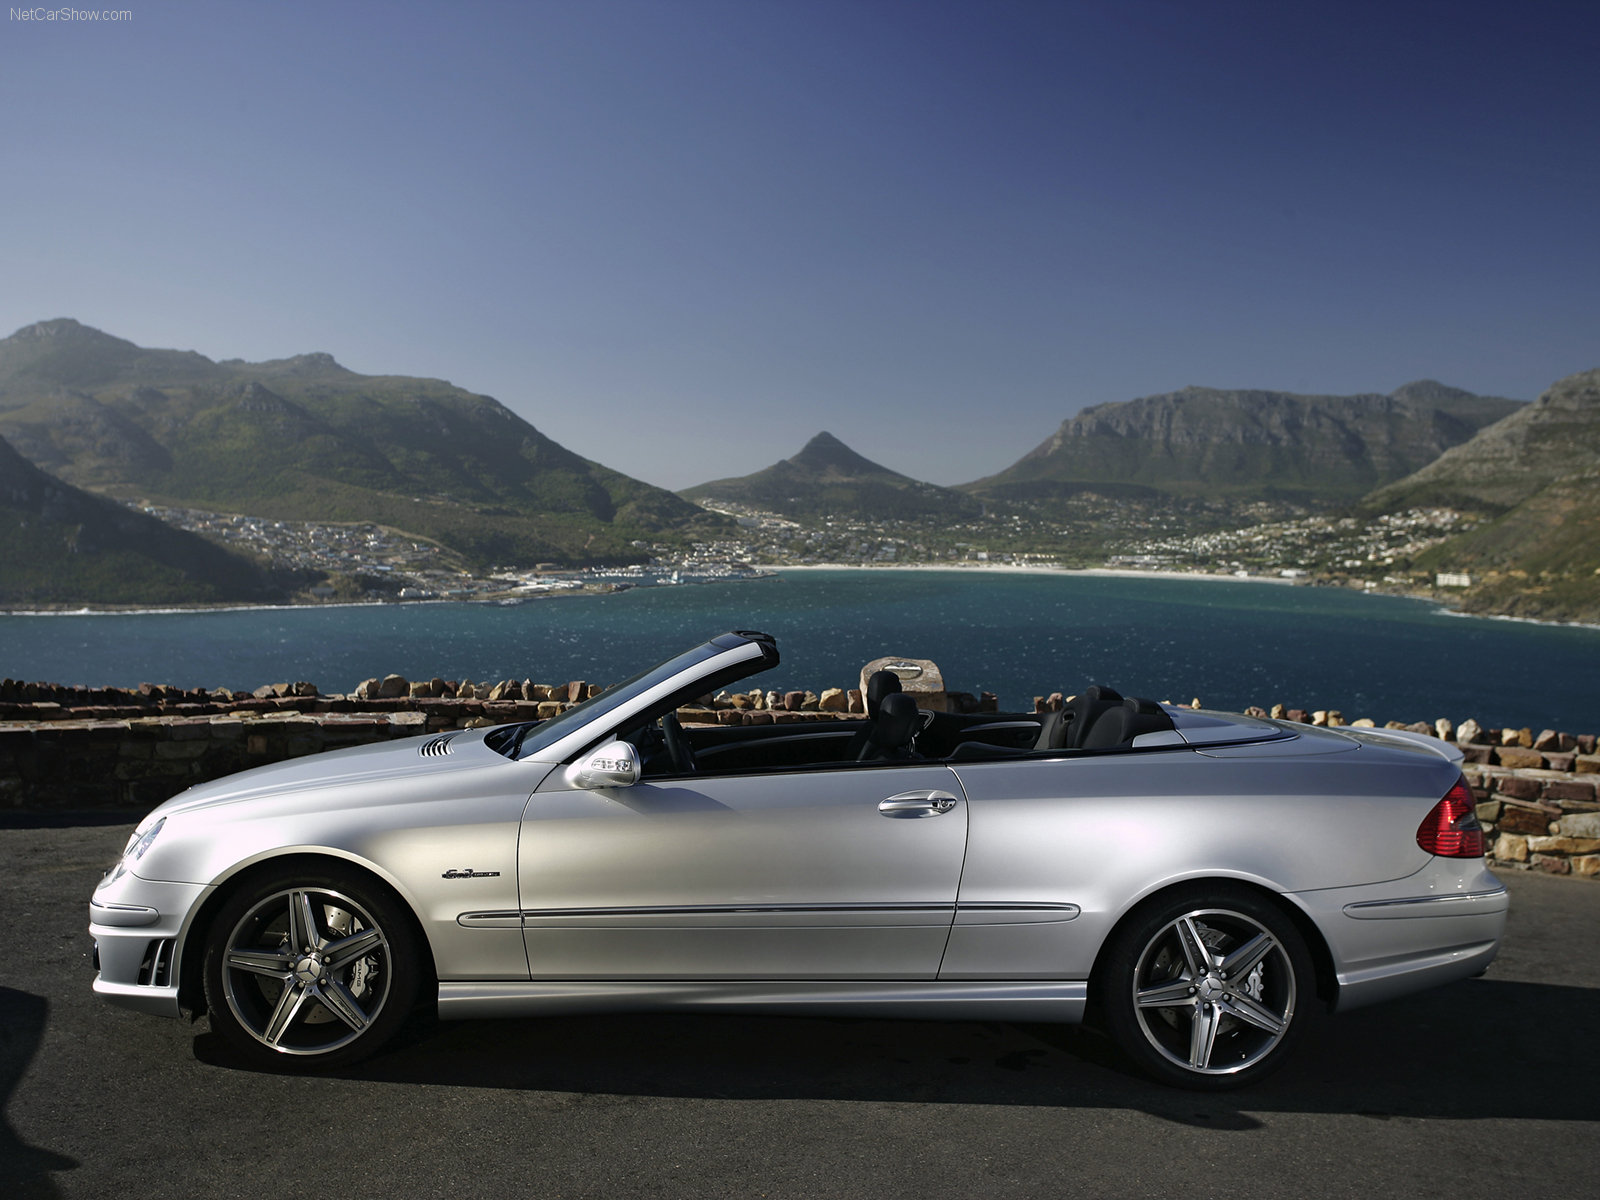 Mercedes benz clk amg photos photogallery with 38 pics for Mercedes benz clk 63 amg